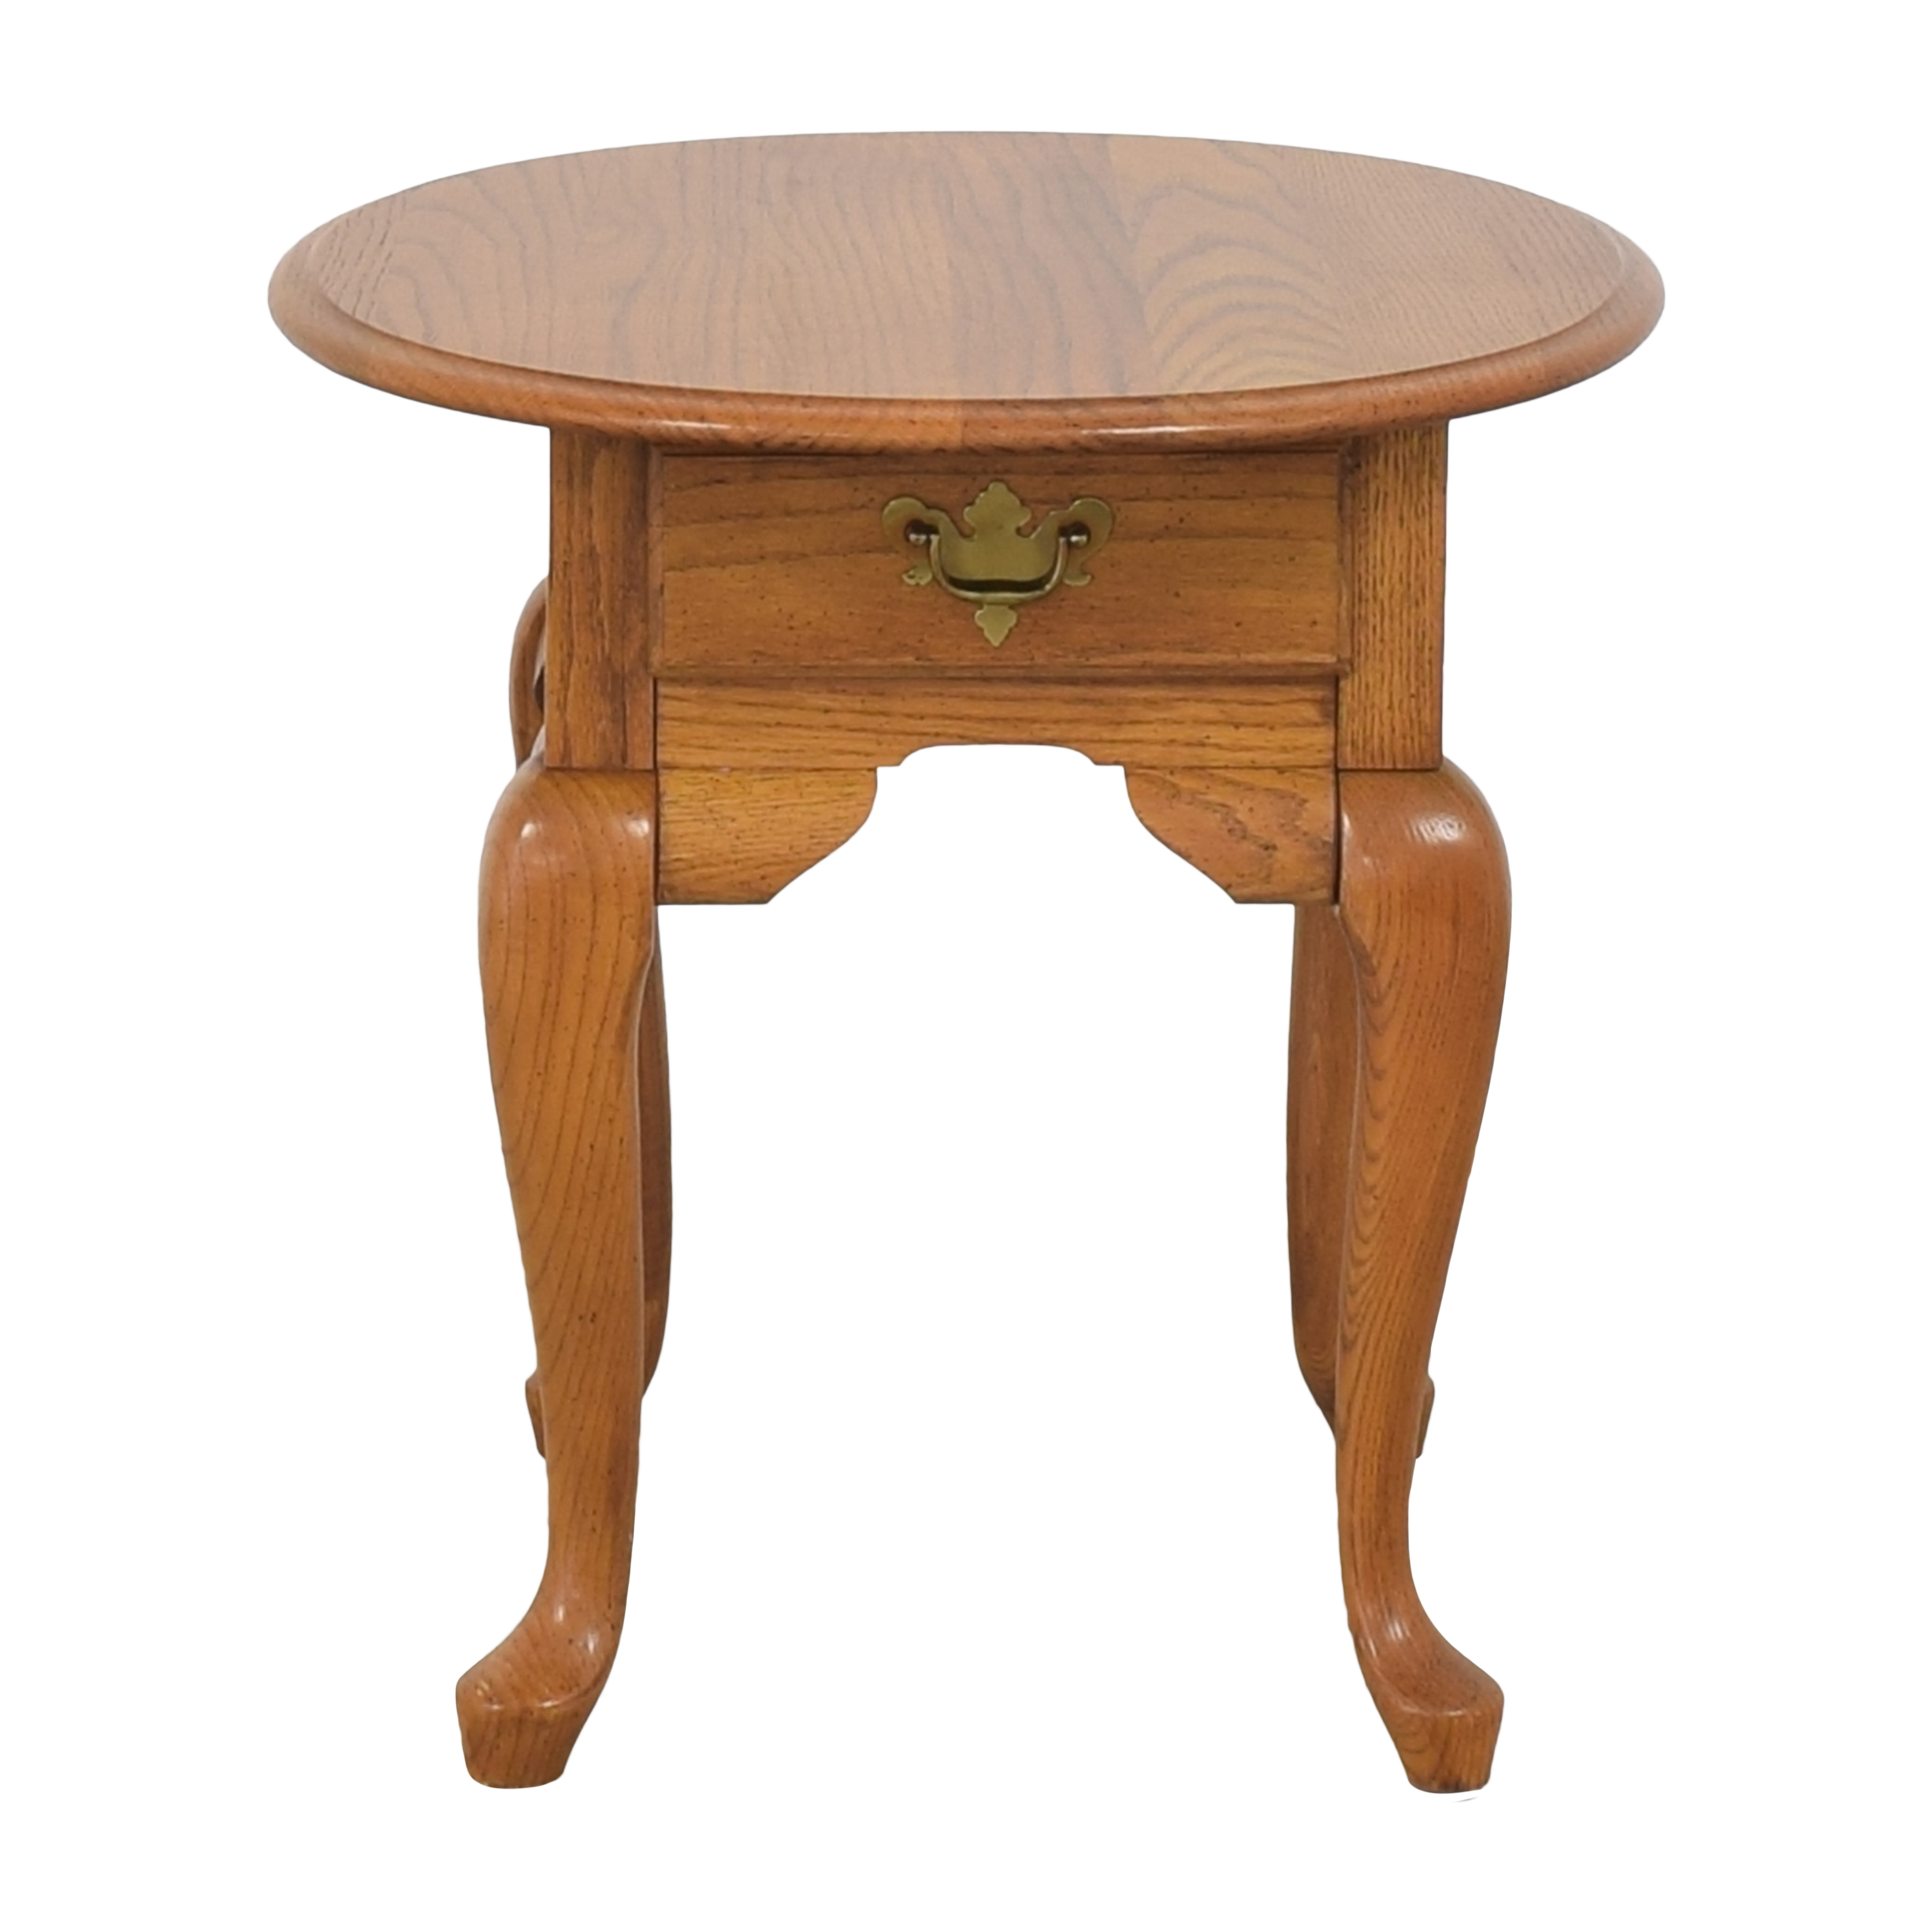 Broyhill Furniture Broyhill Single Drawer Round End Table on sale